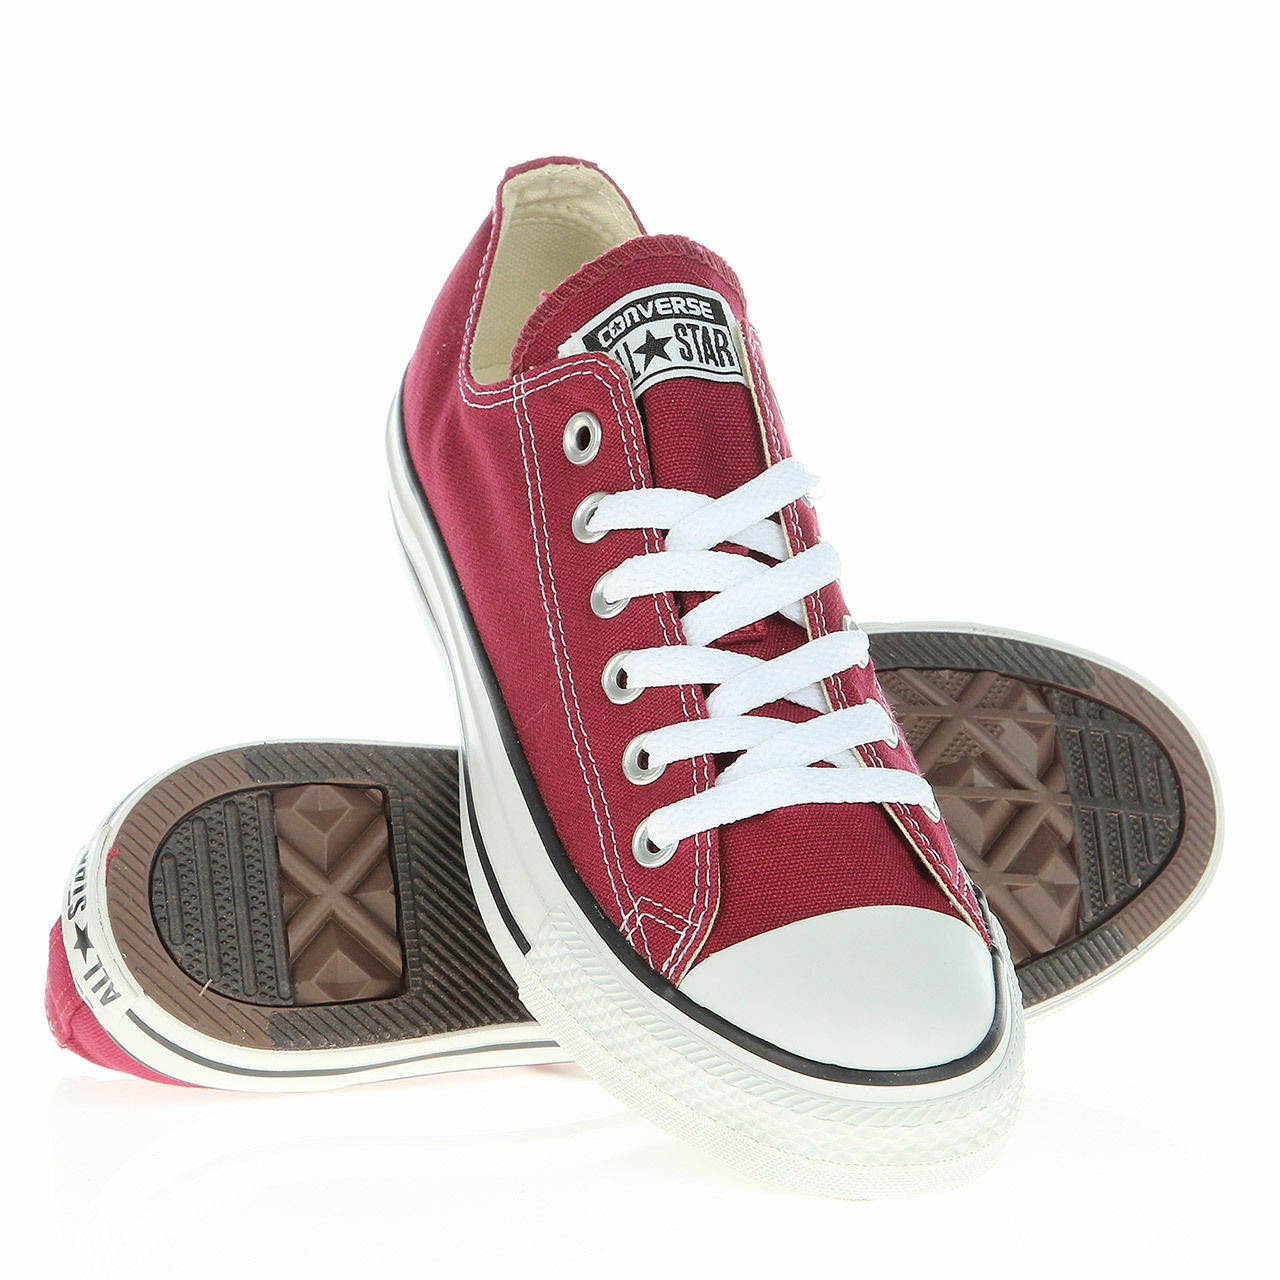 CONVERSE hommes & femmes causale baskets sports marche college chaussures uk Taille 3-10